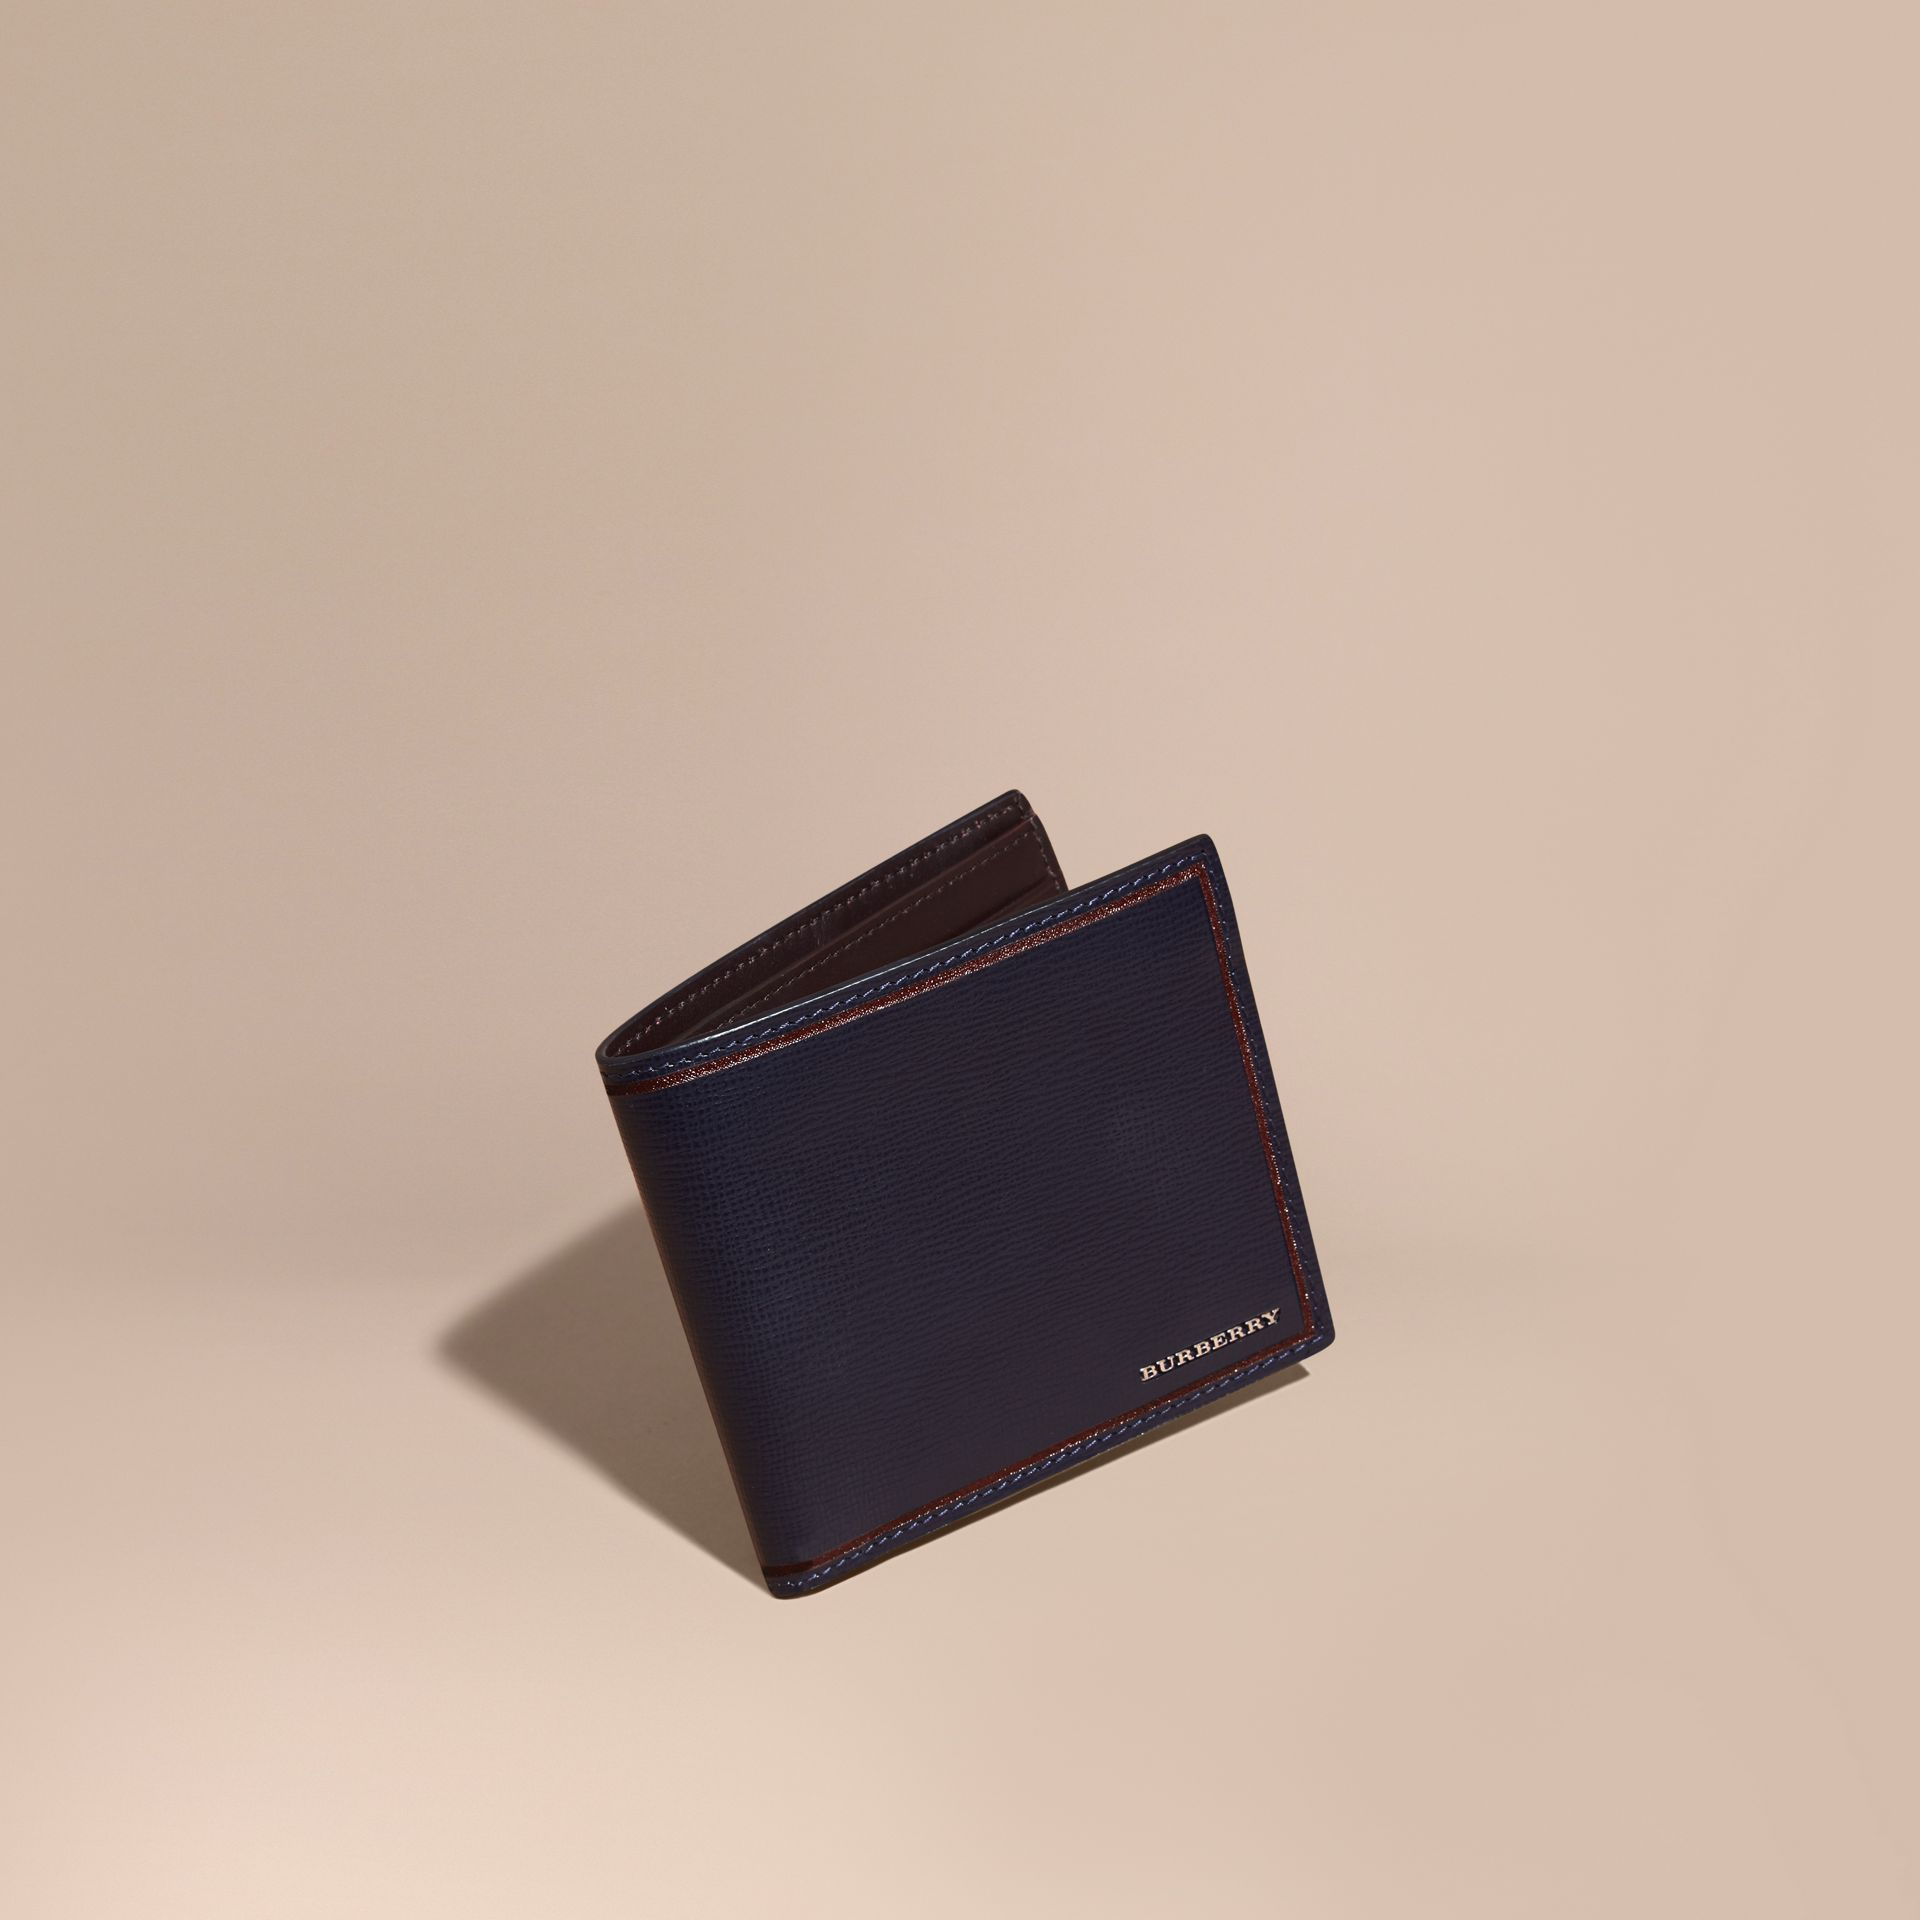 Border Detail London Leather Folding Wallet Dark Navy - gallery image 1